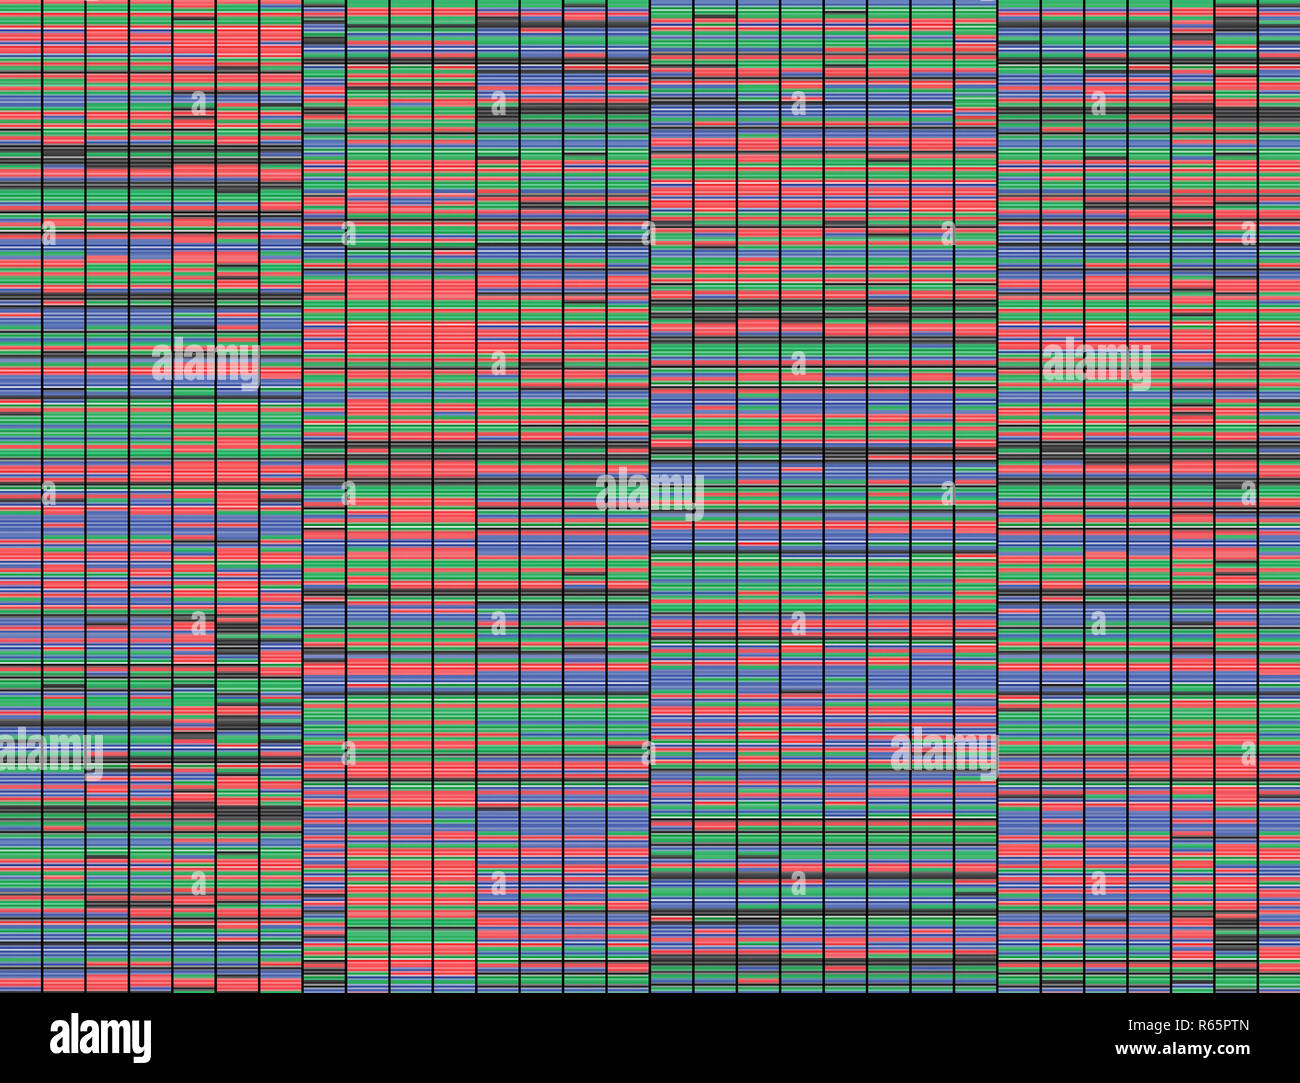 Sanger Sequencing Background - Stock Image